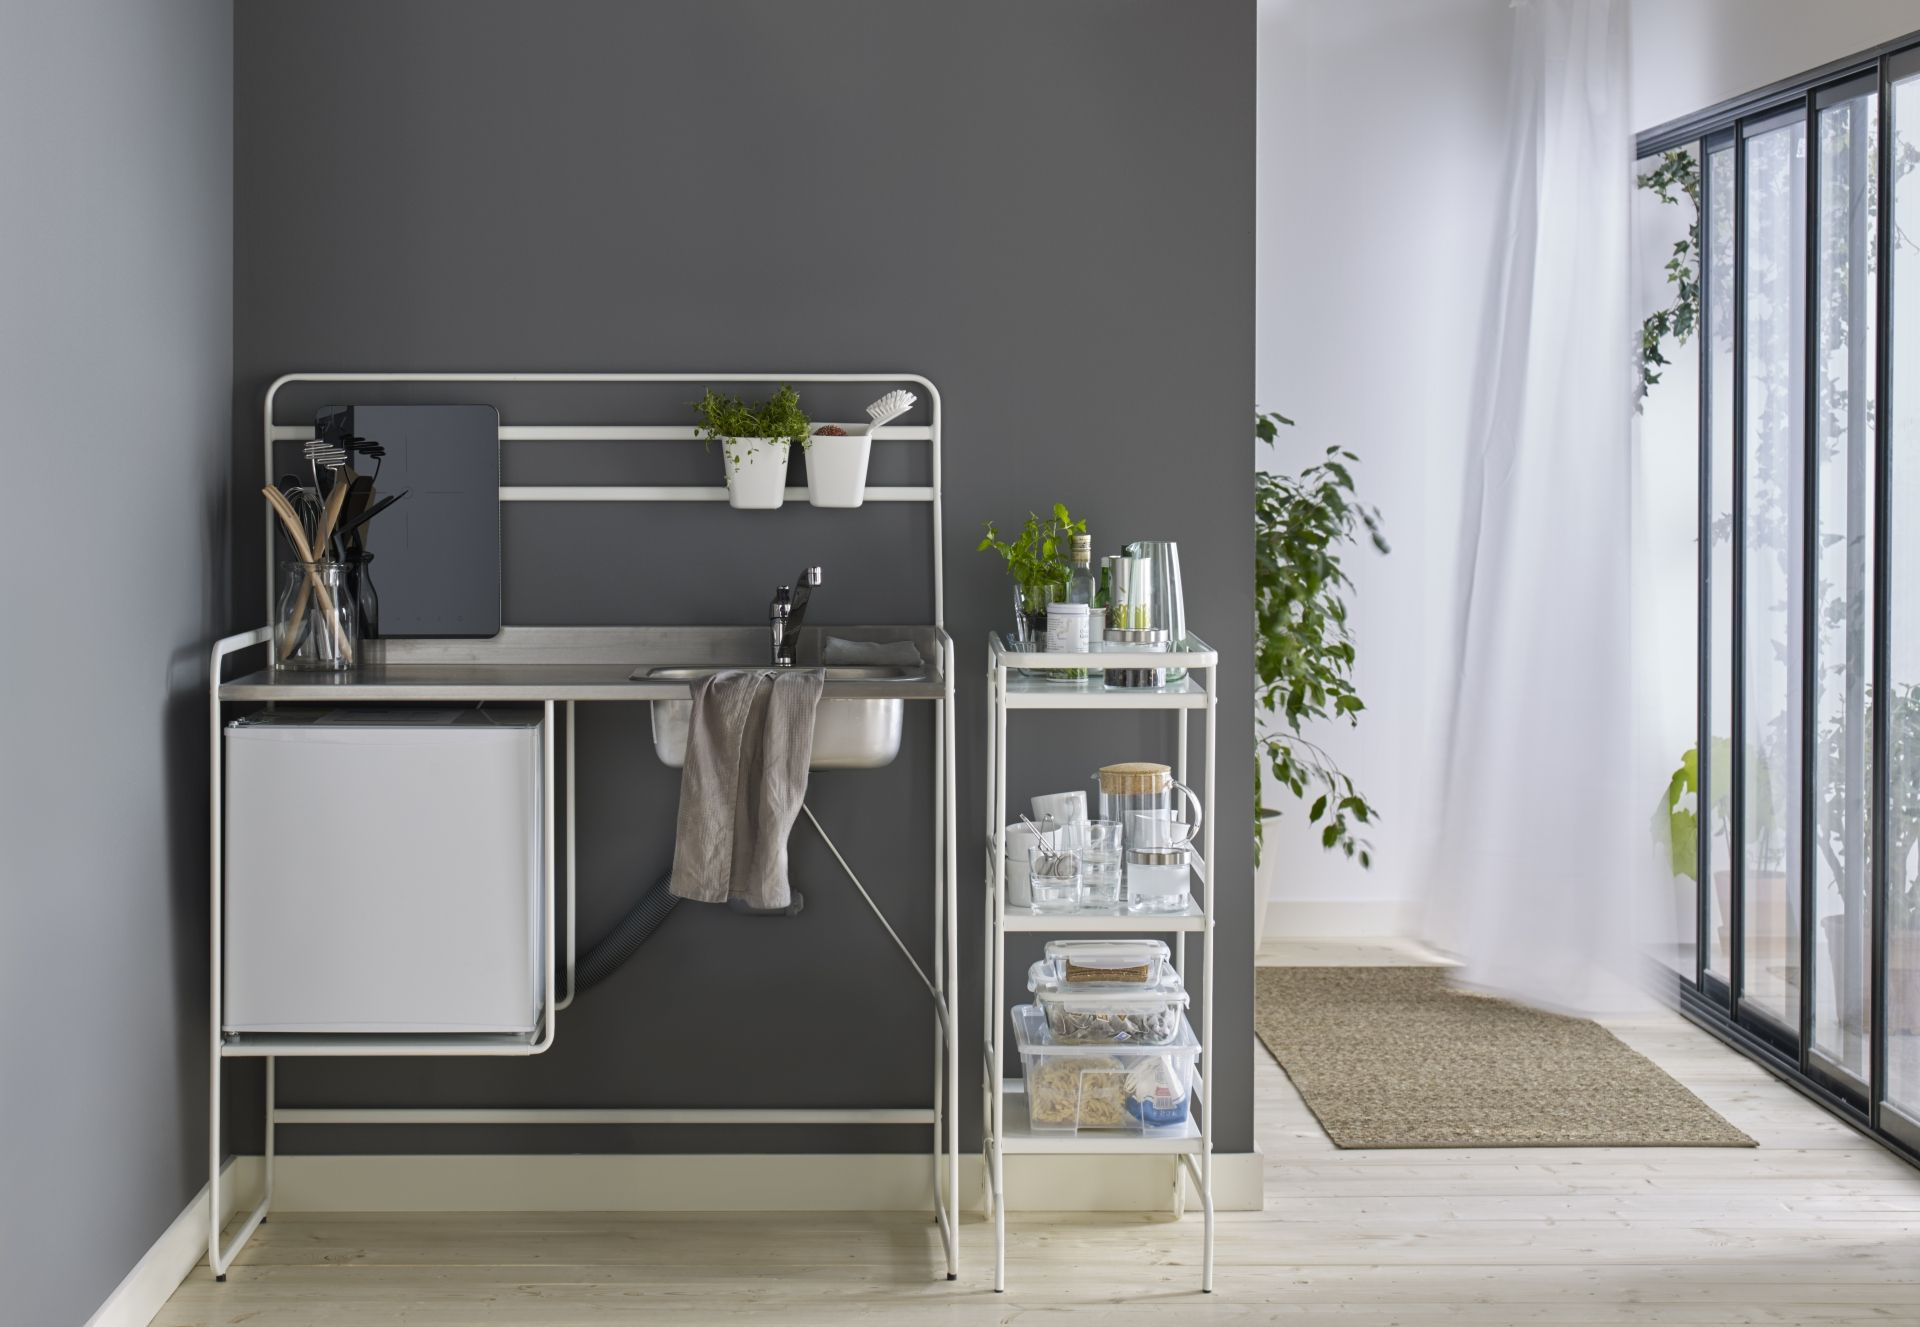 SUNNERSTA Kitchenette | IKEA catalogus 2017 | Pinterest | Cucine ...